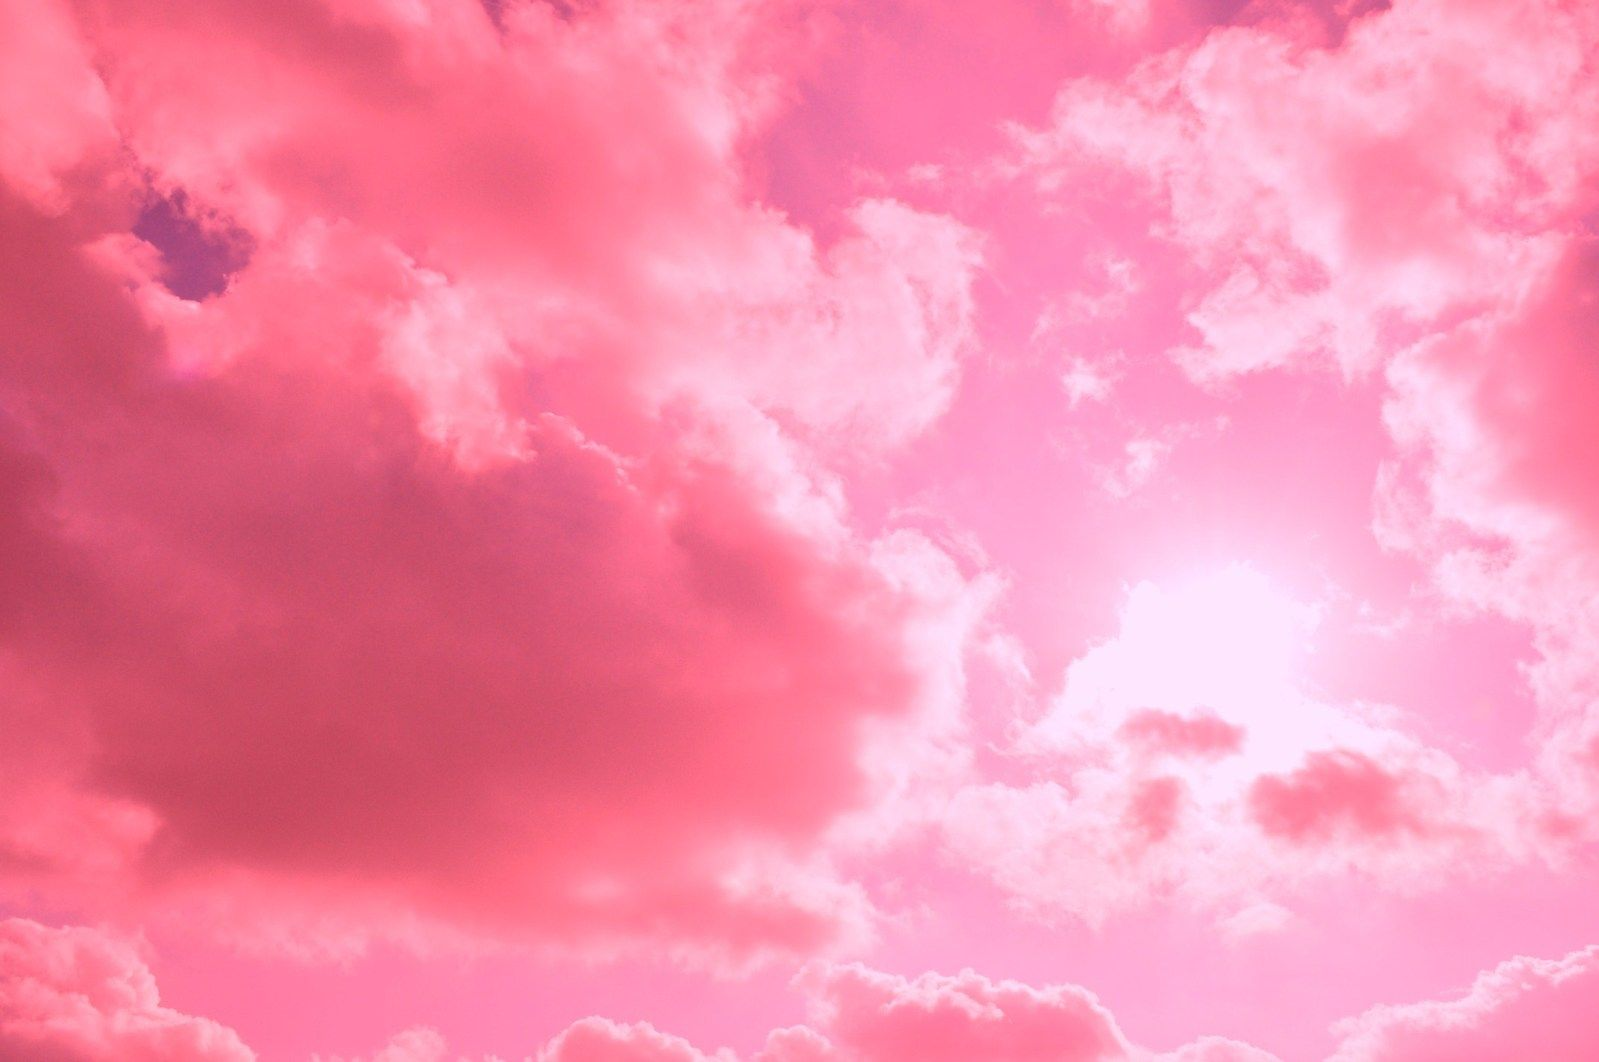 Aesthetic Clouds Hd Wallpapers Wallpaper Cave